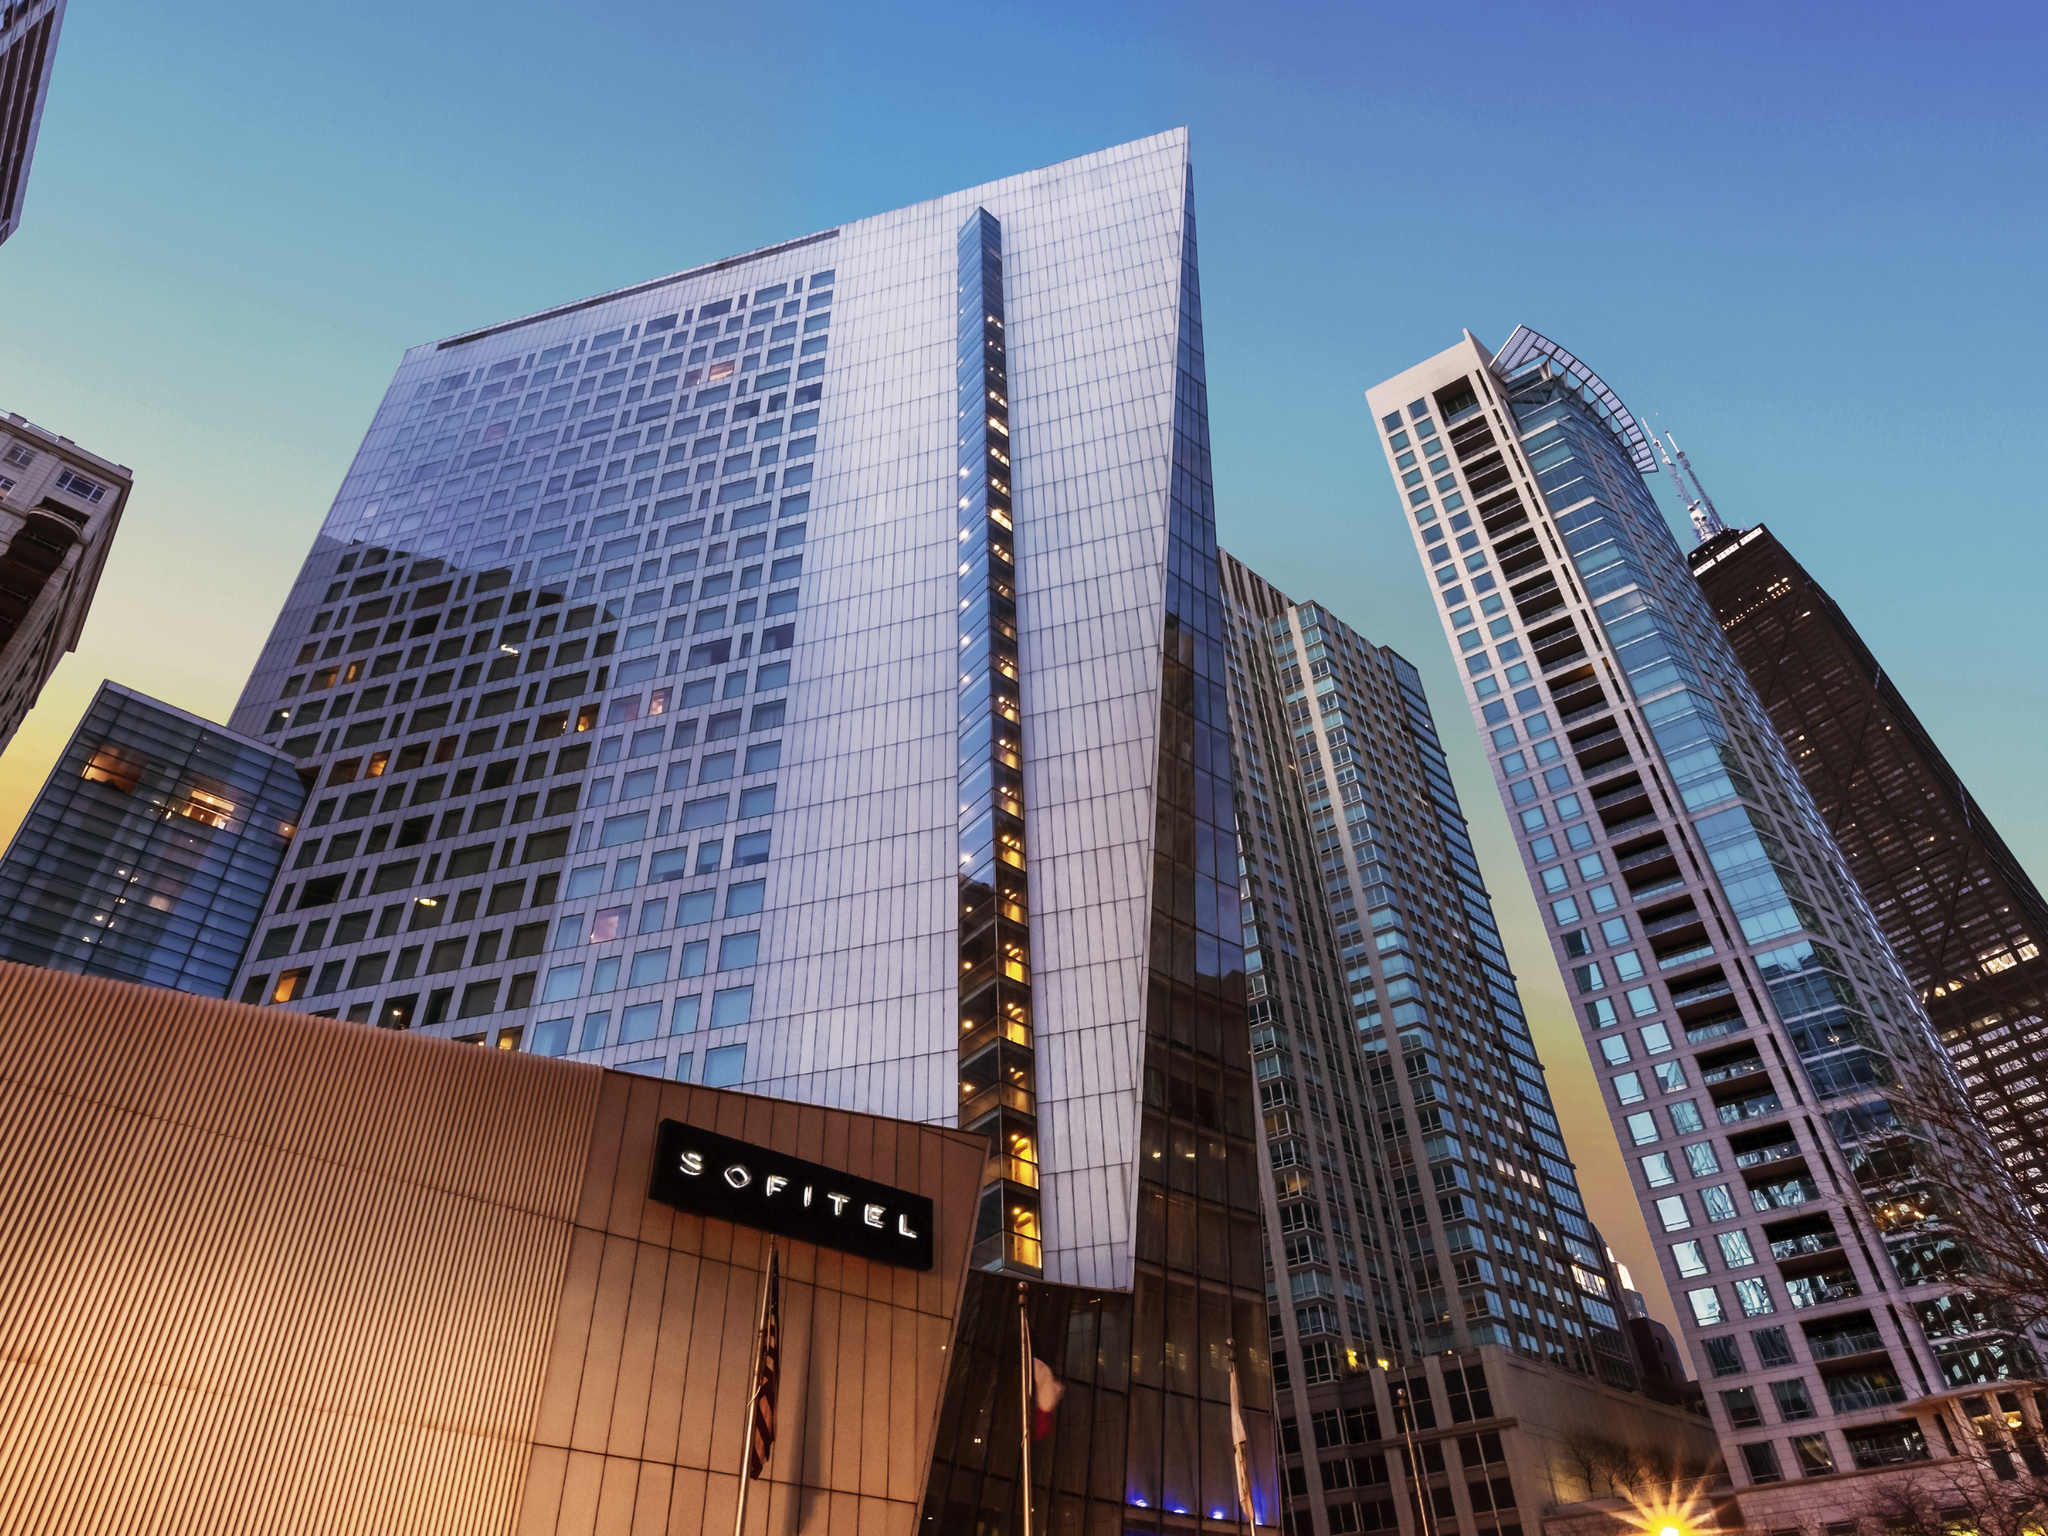 Hotel – Sofitel Chicago Magnificent Mile